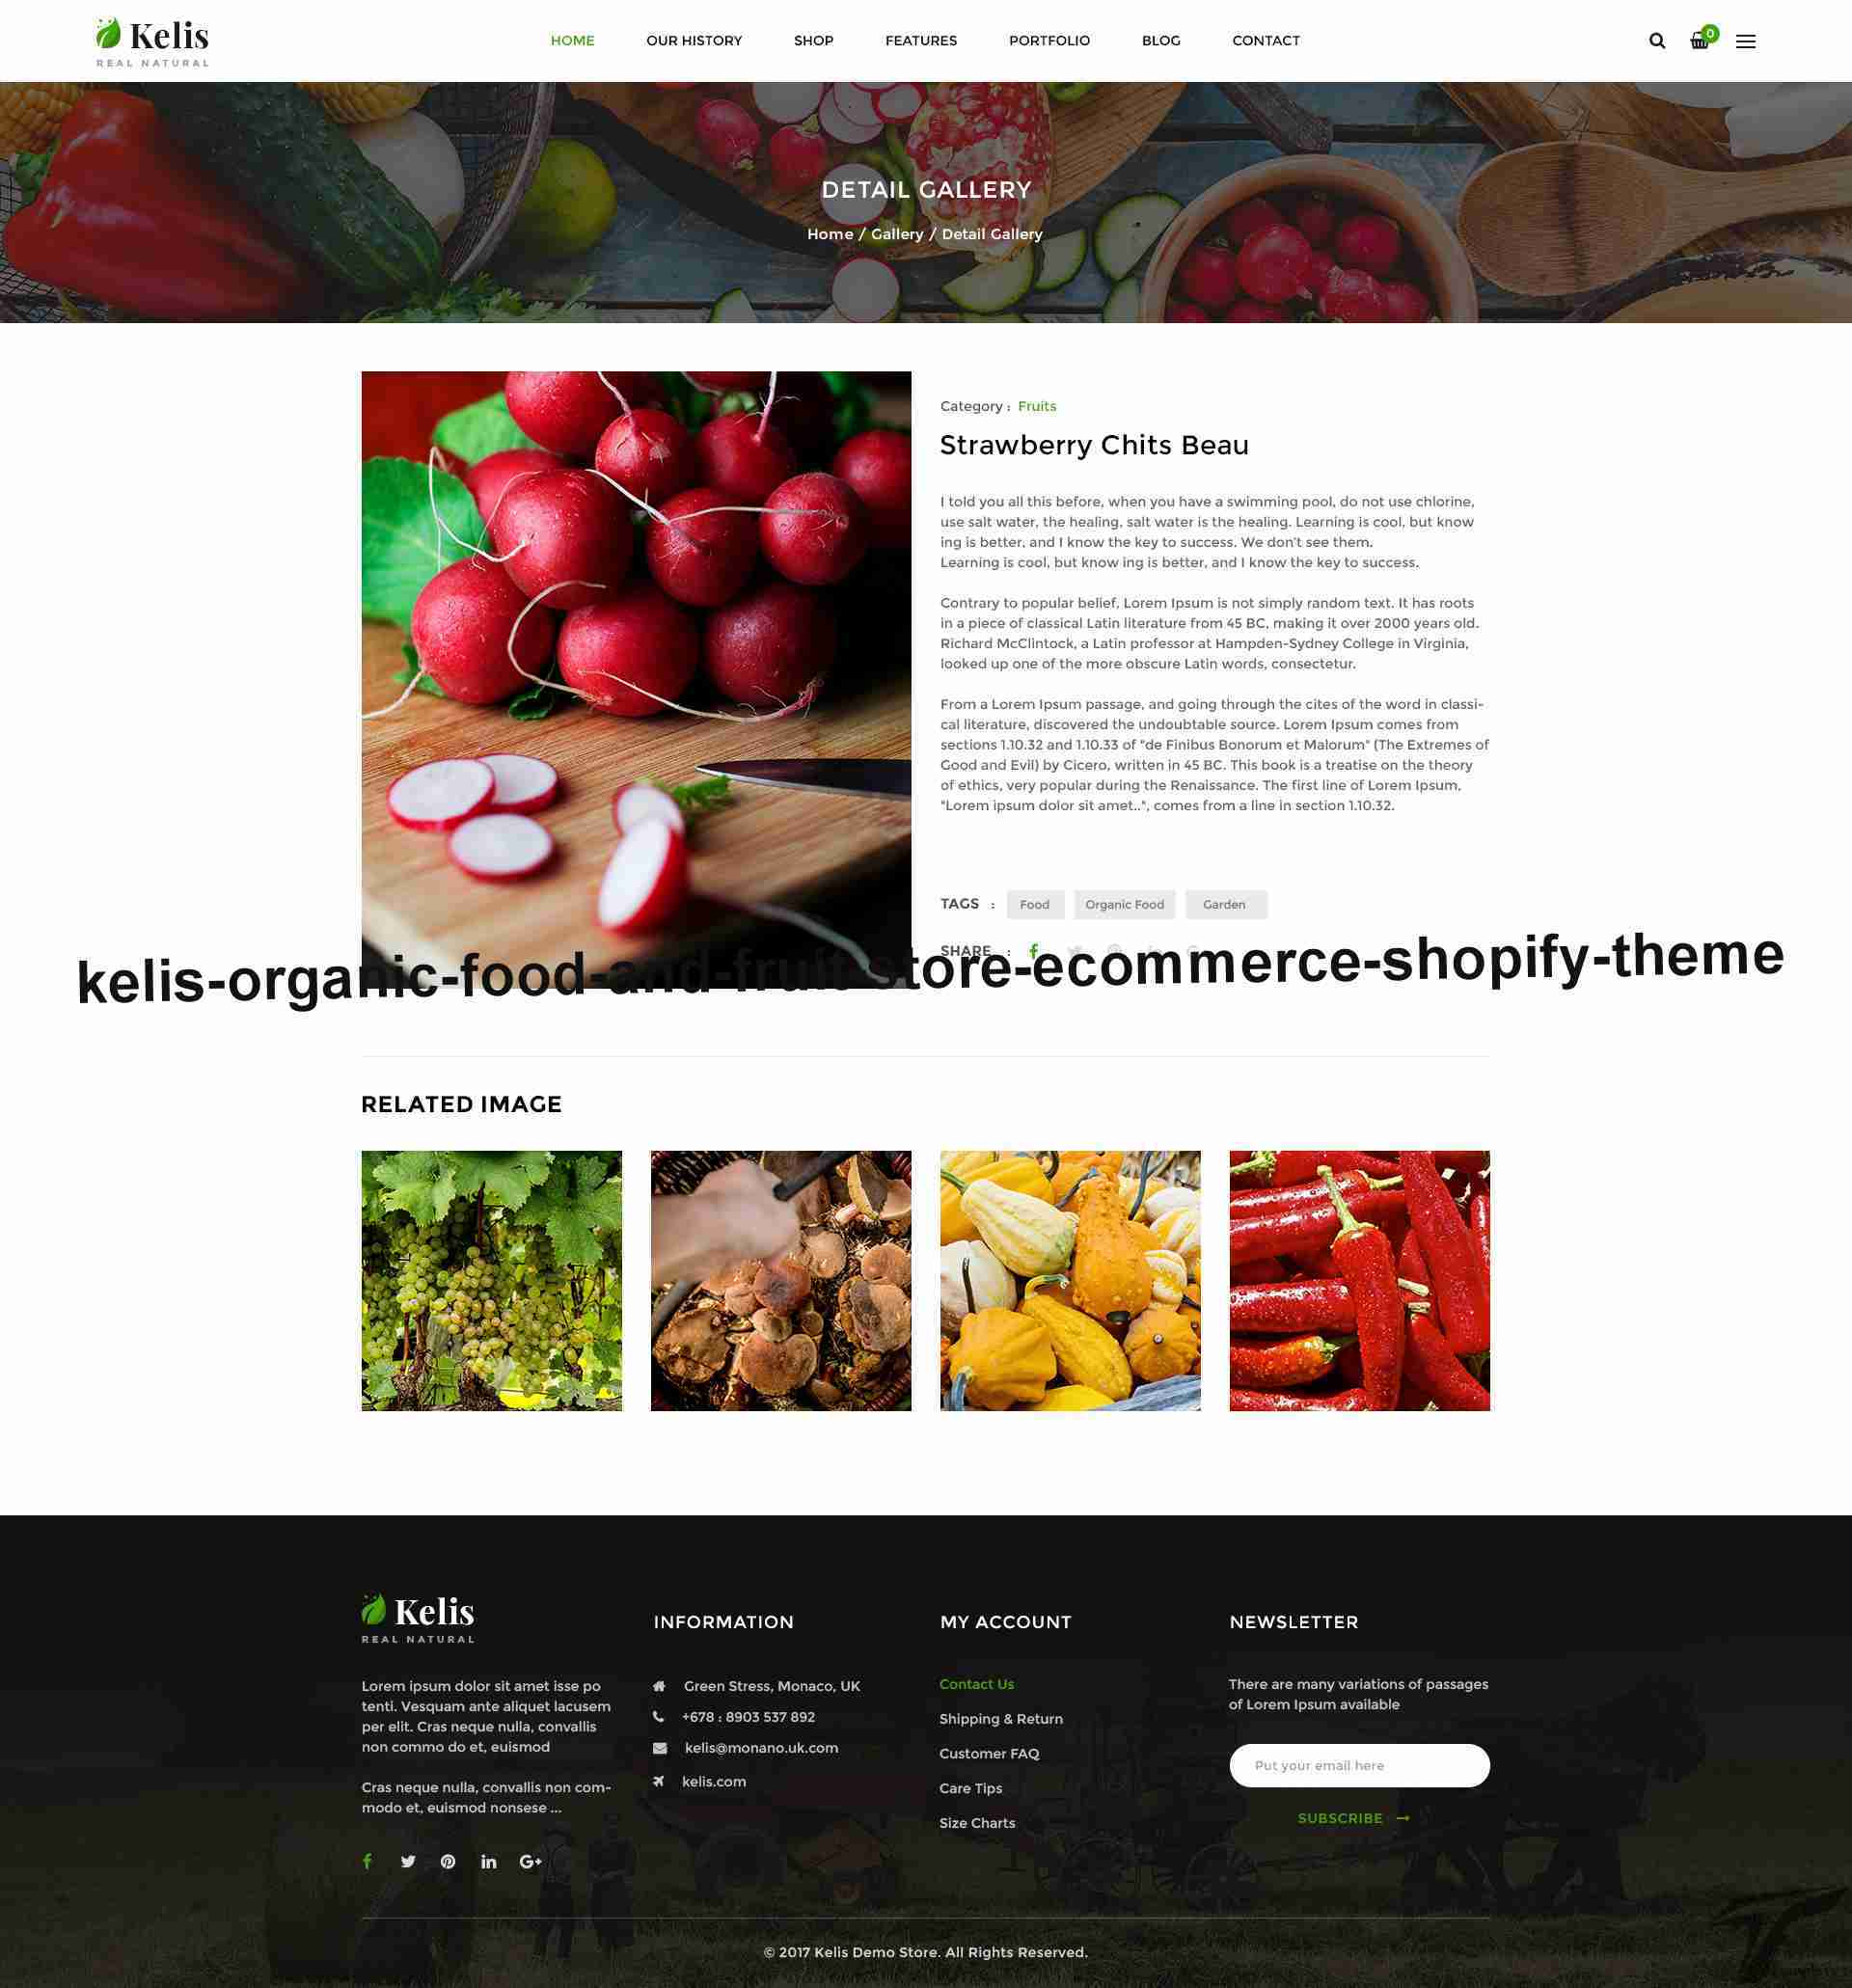 https://images.besthemes.com/images/h1_kelis-organic-food-and-fruit-store-ecommerce-shopify-theme20-_-234864139/Theme-s20s-Preview/19.Gallery_Detail.jpg